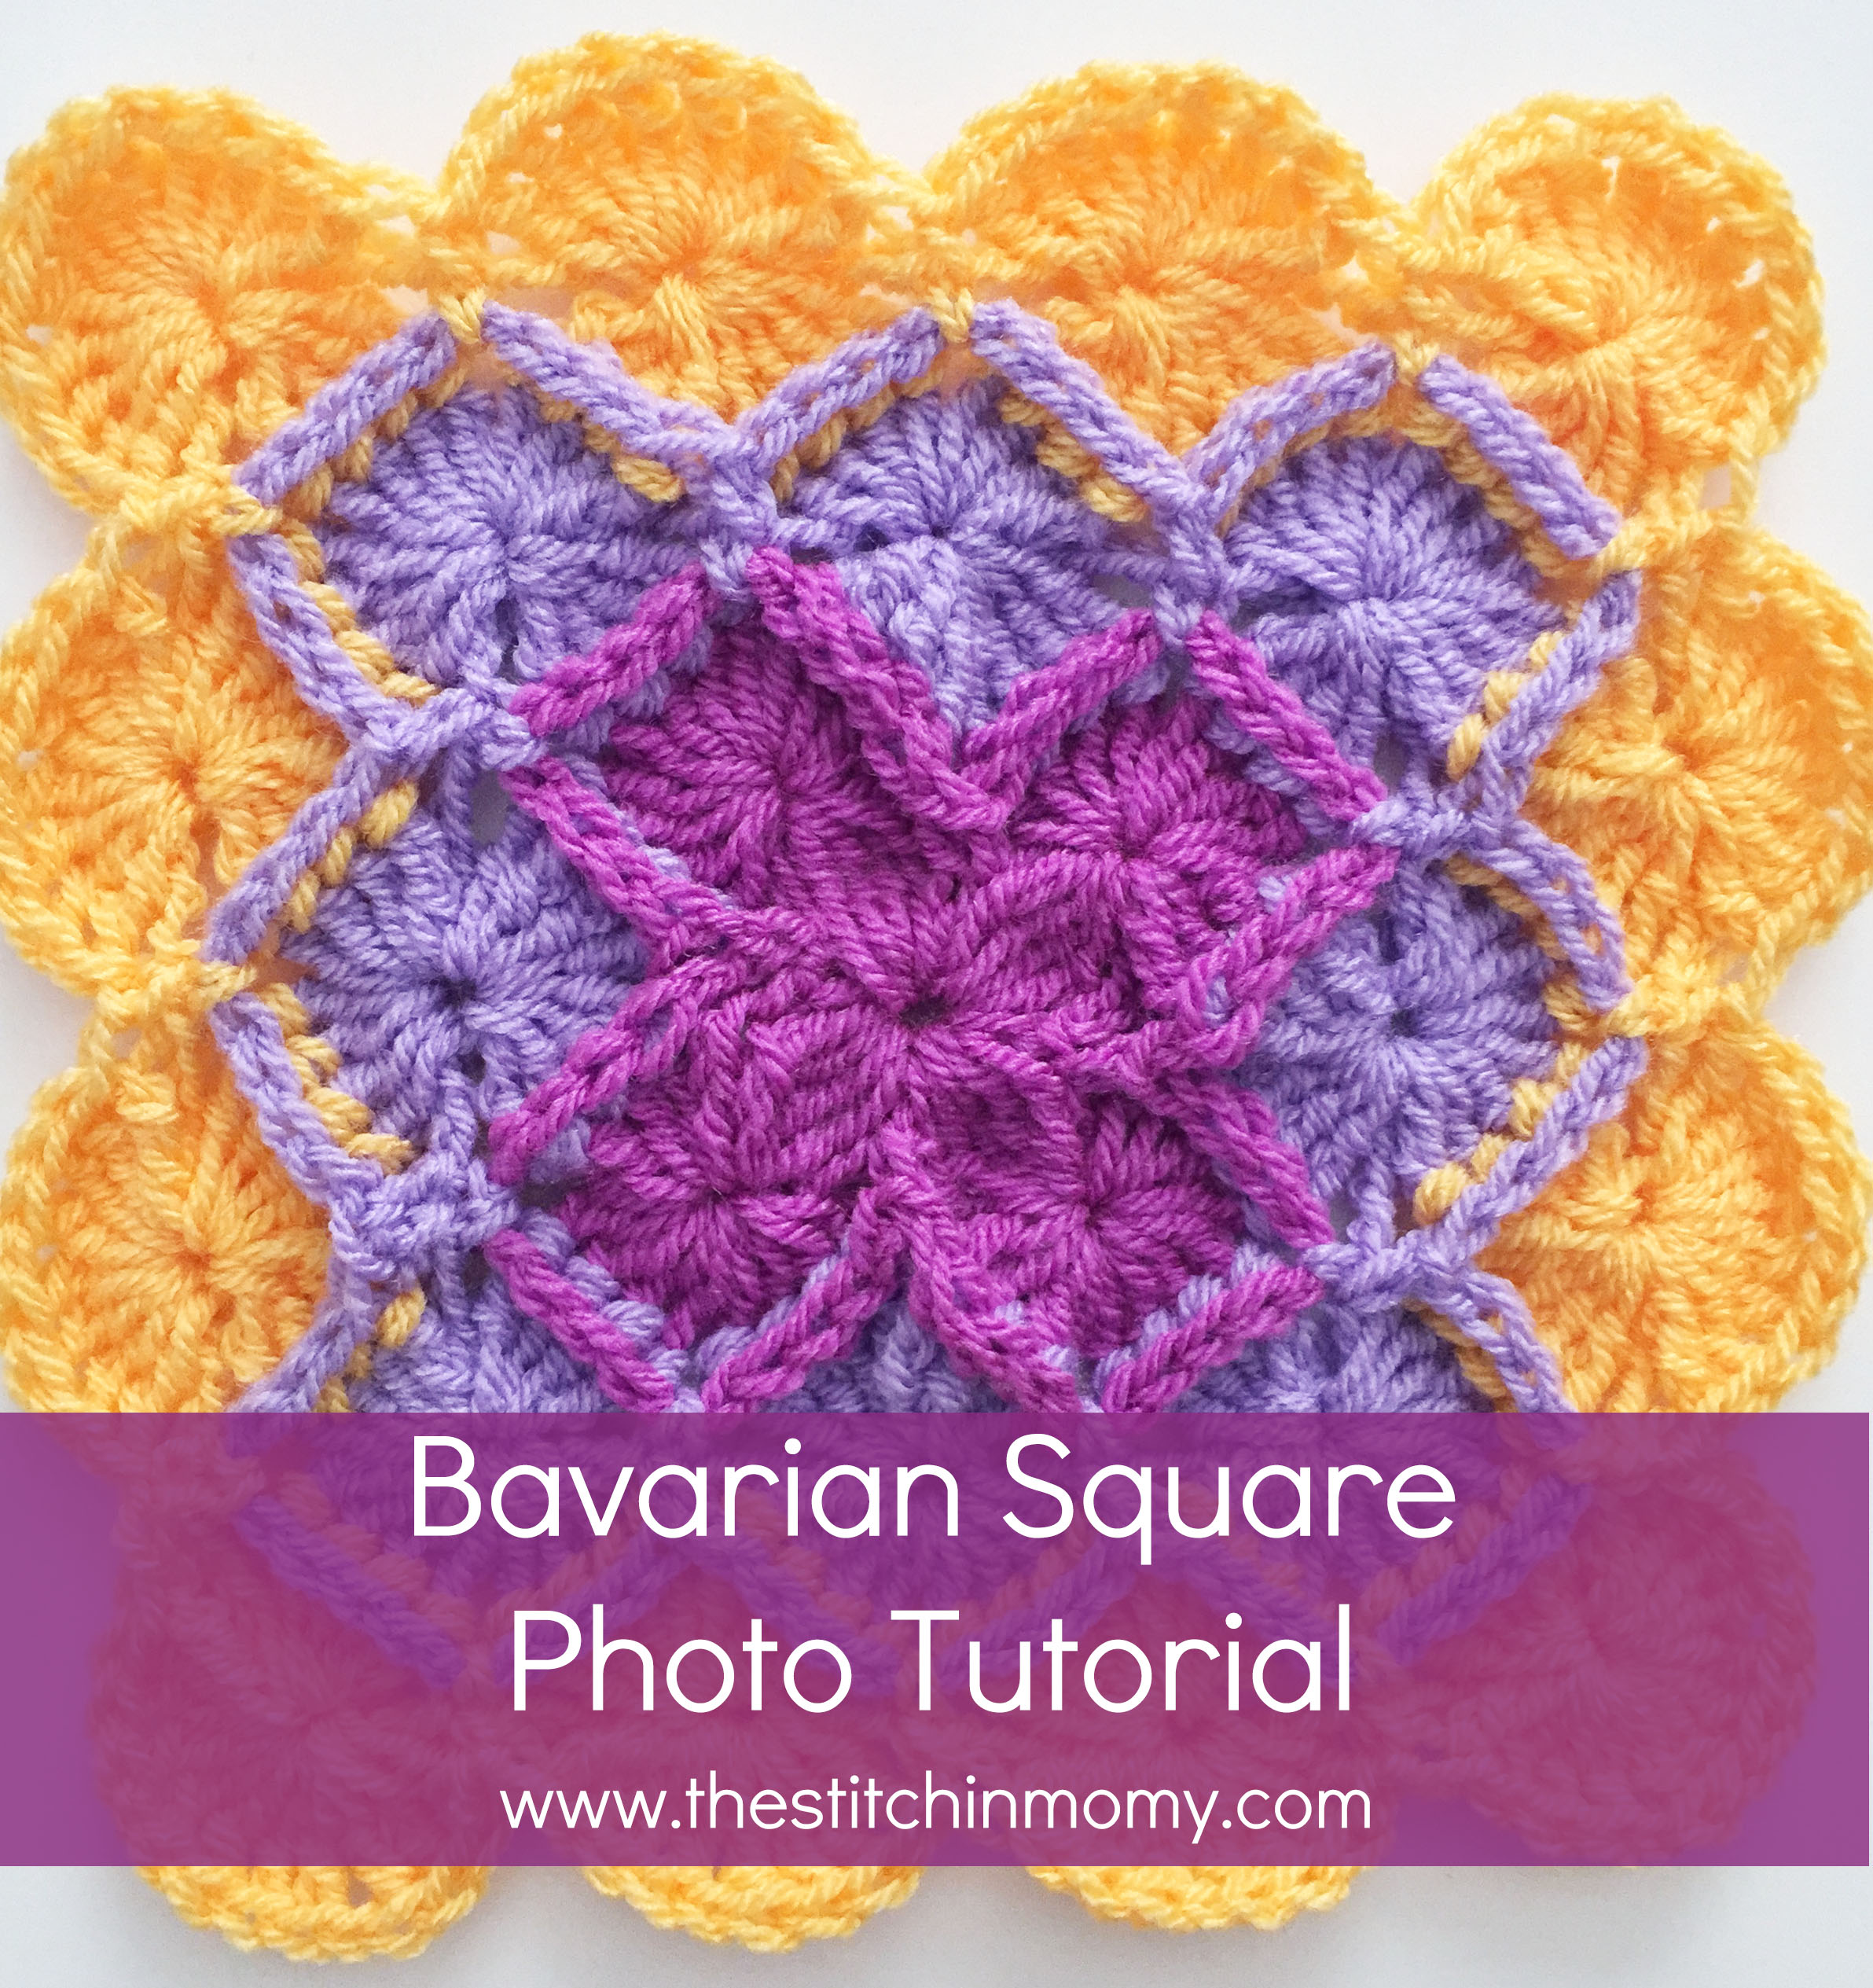 Bavarian Square Tutorial The Stitchin Mommy